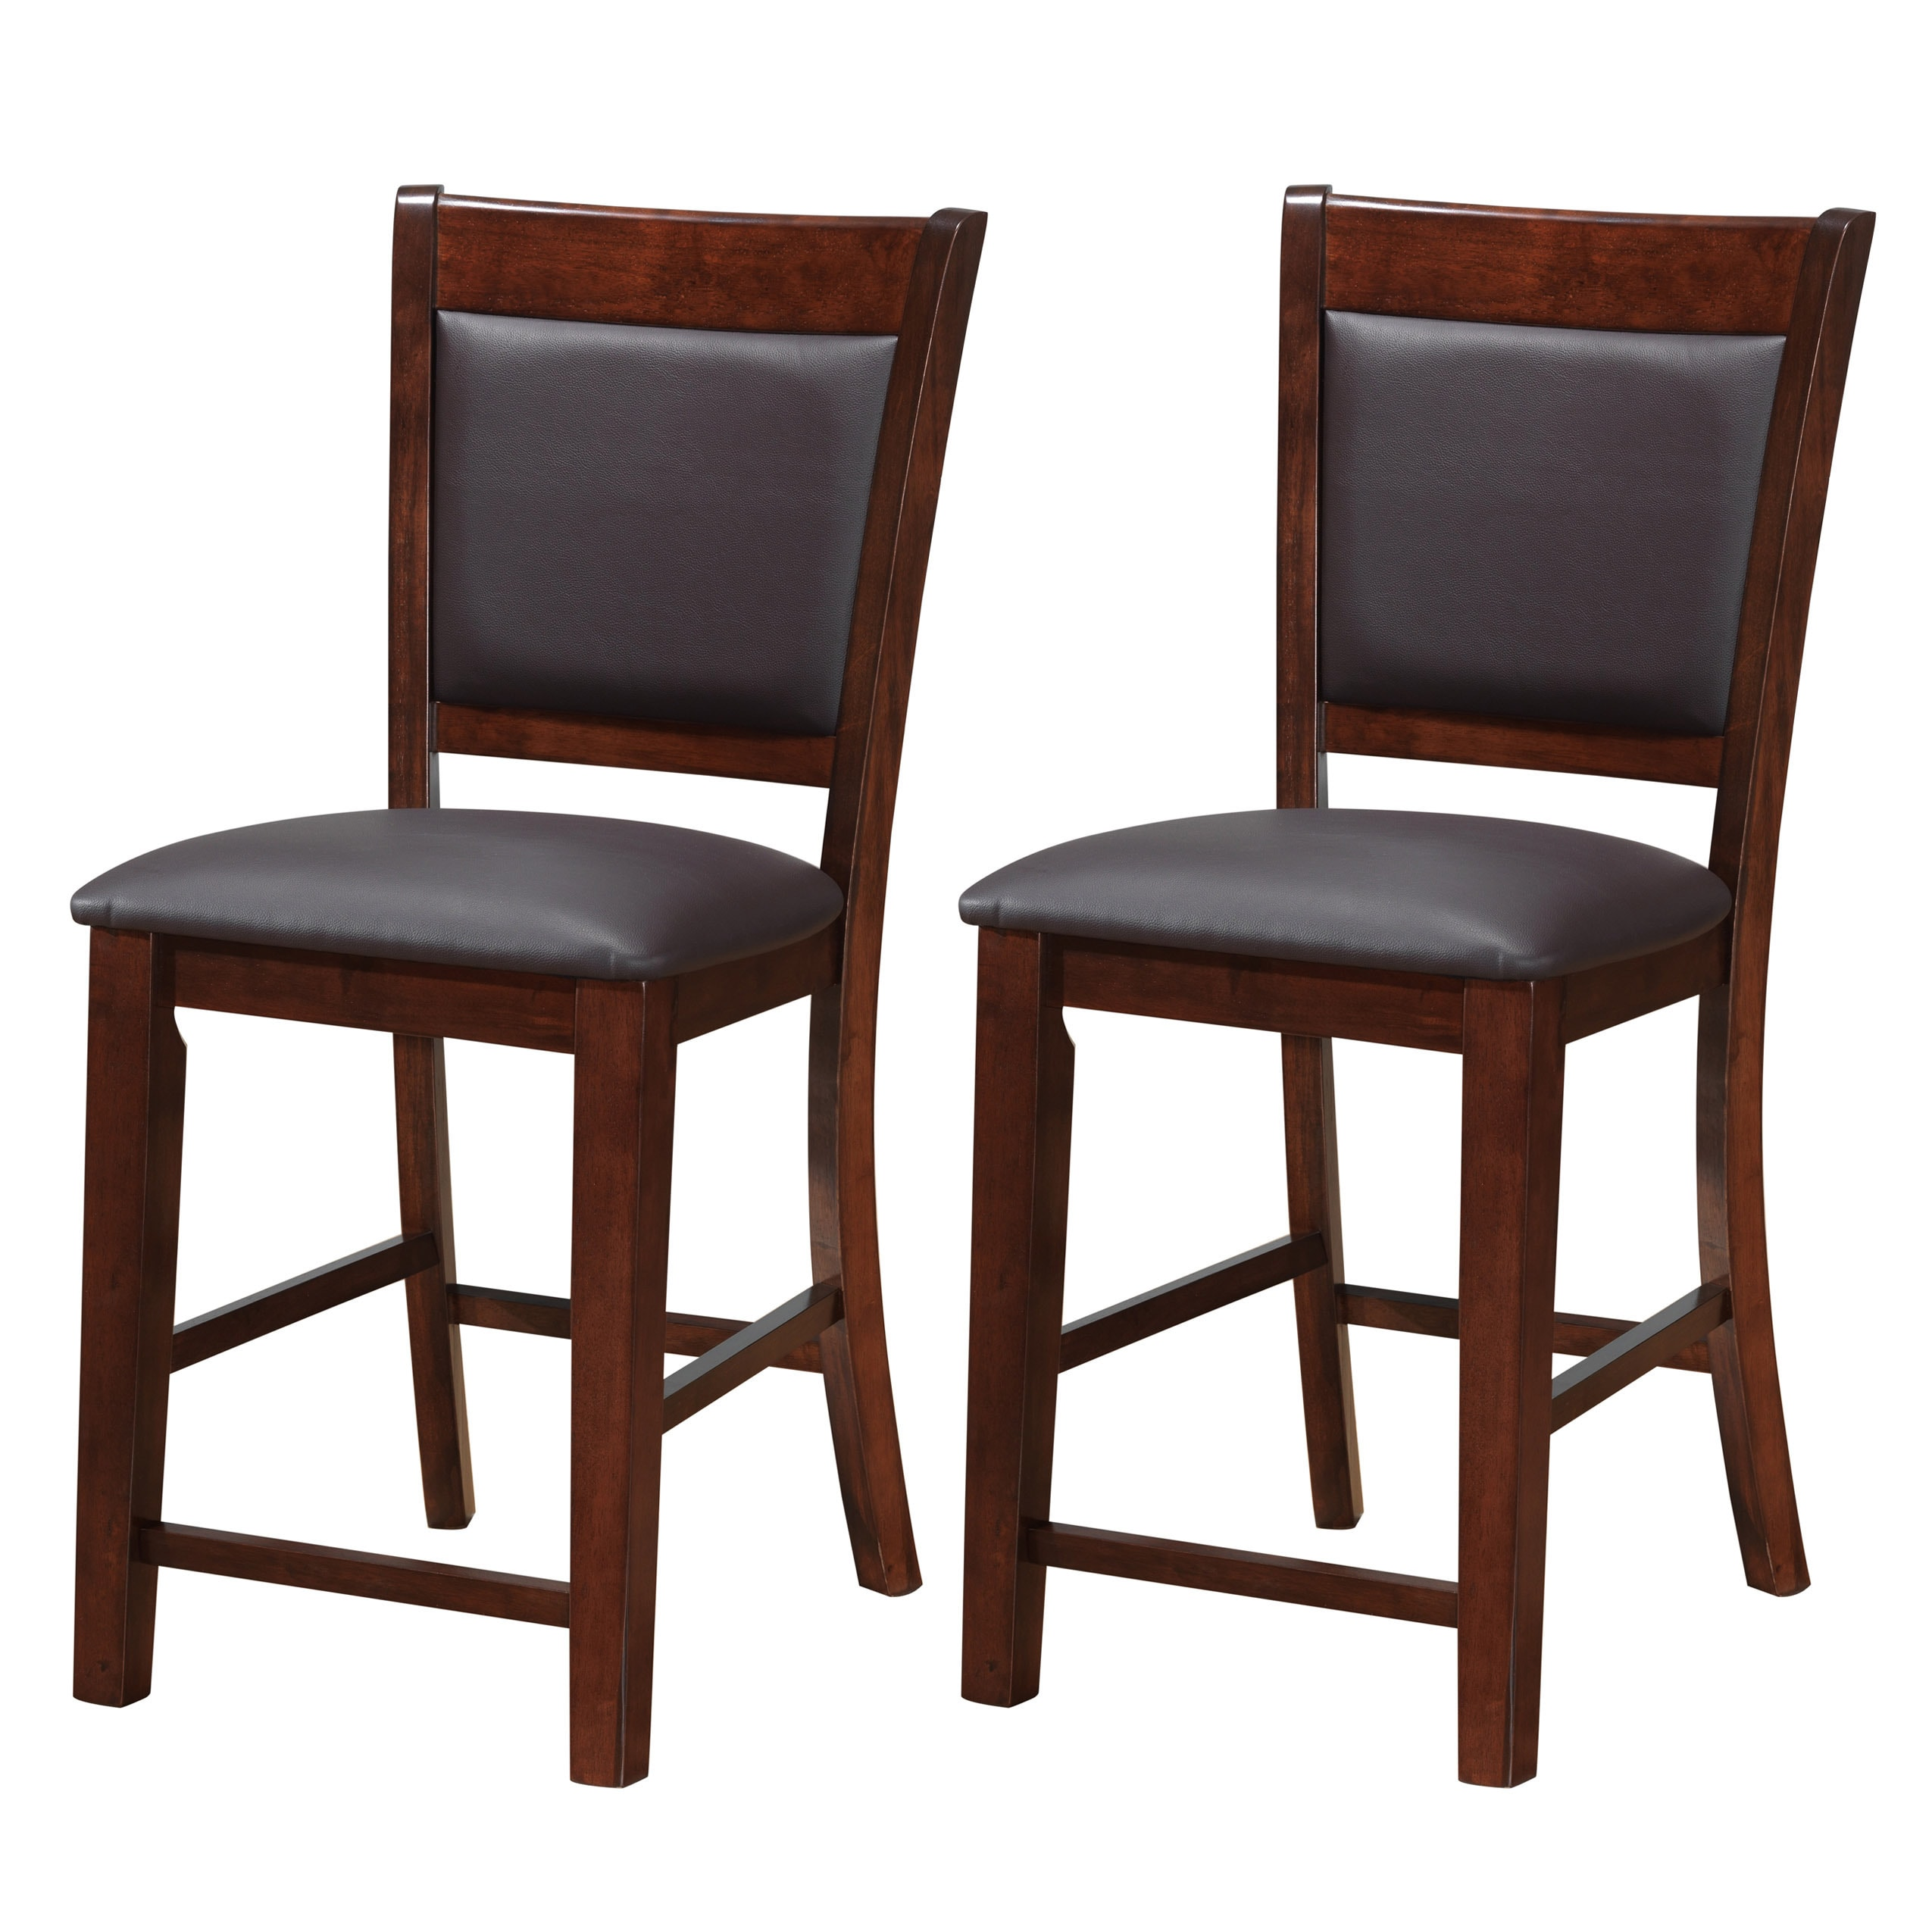 Corliving chocolate brown bonded leather counter height stools set of 2 free shipping today overstock 18437556